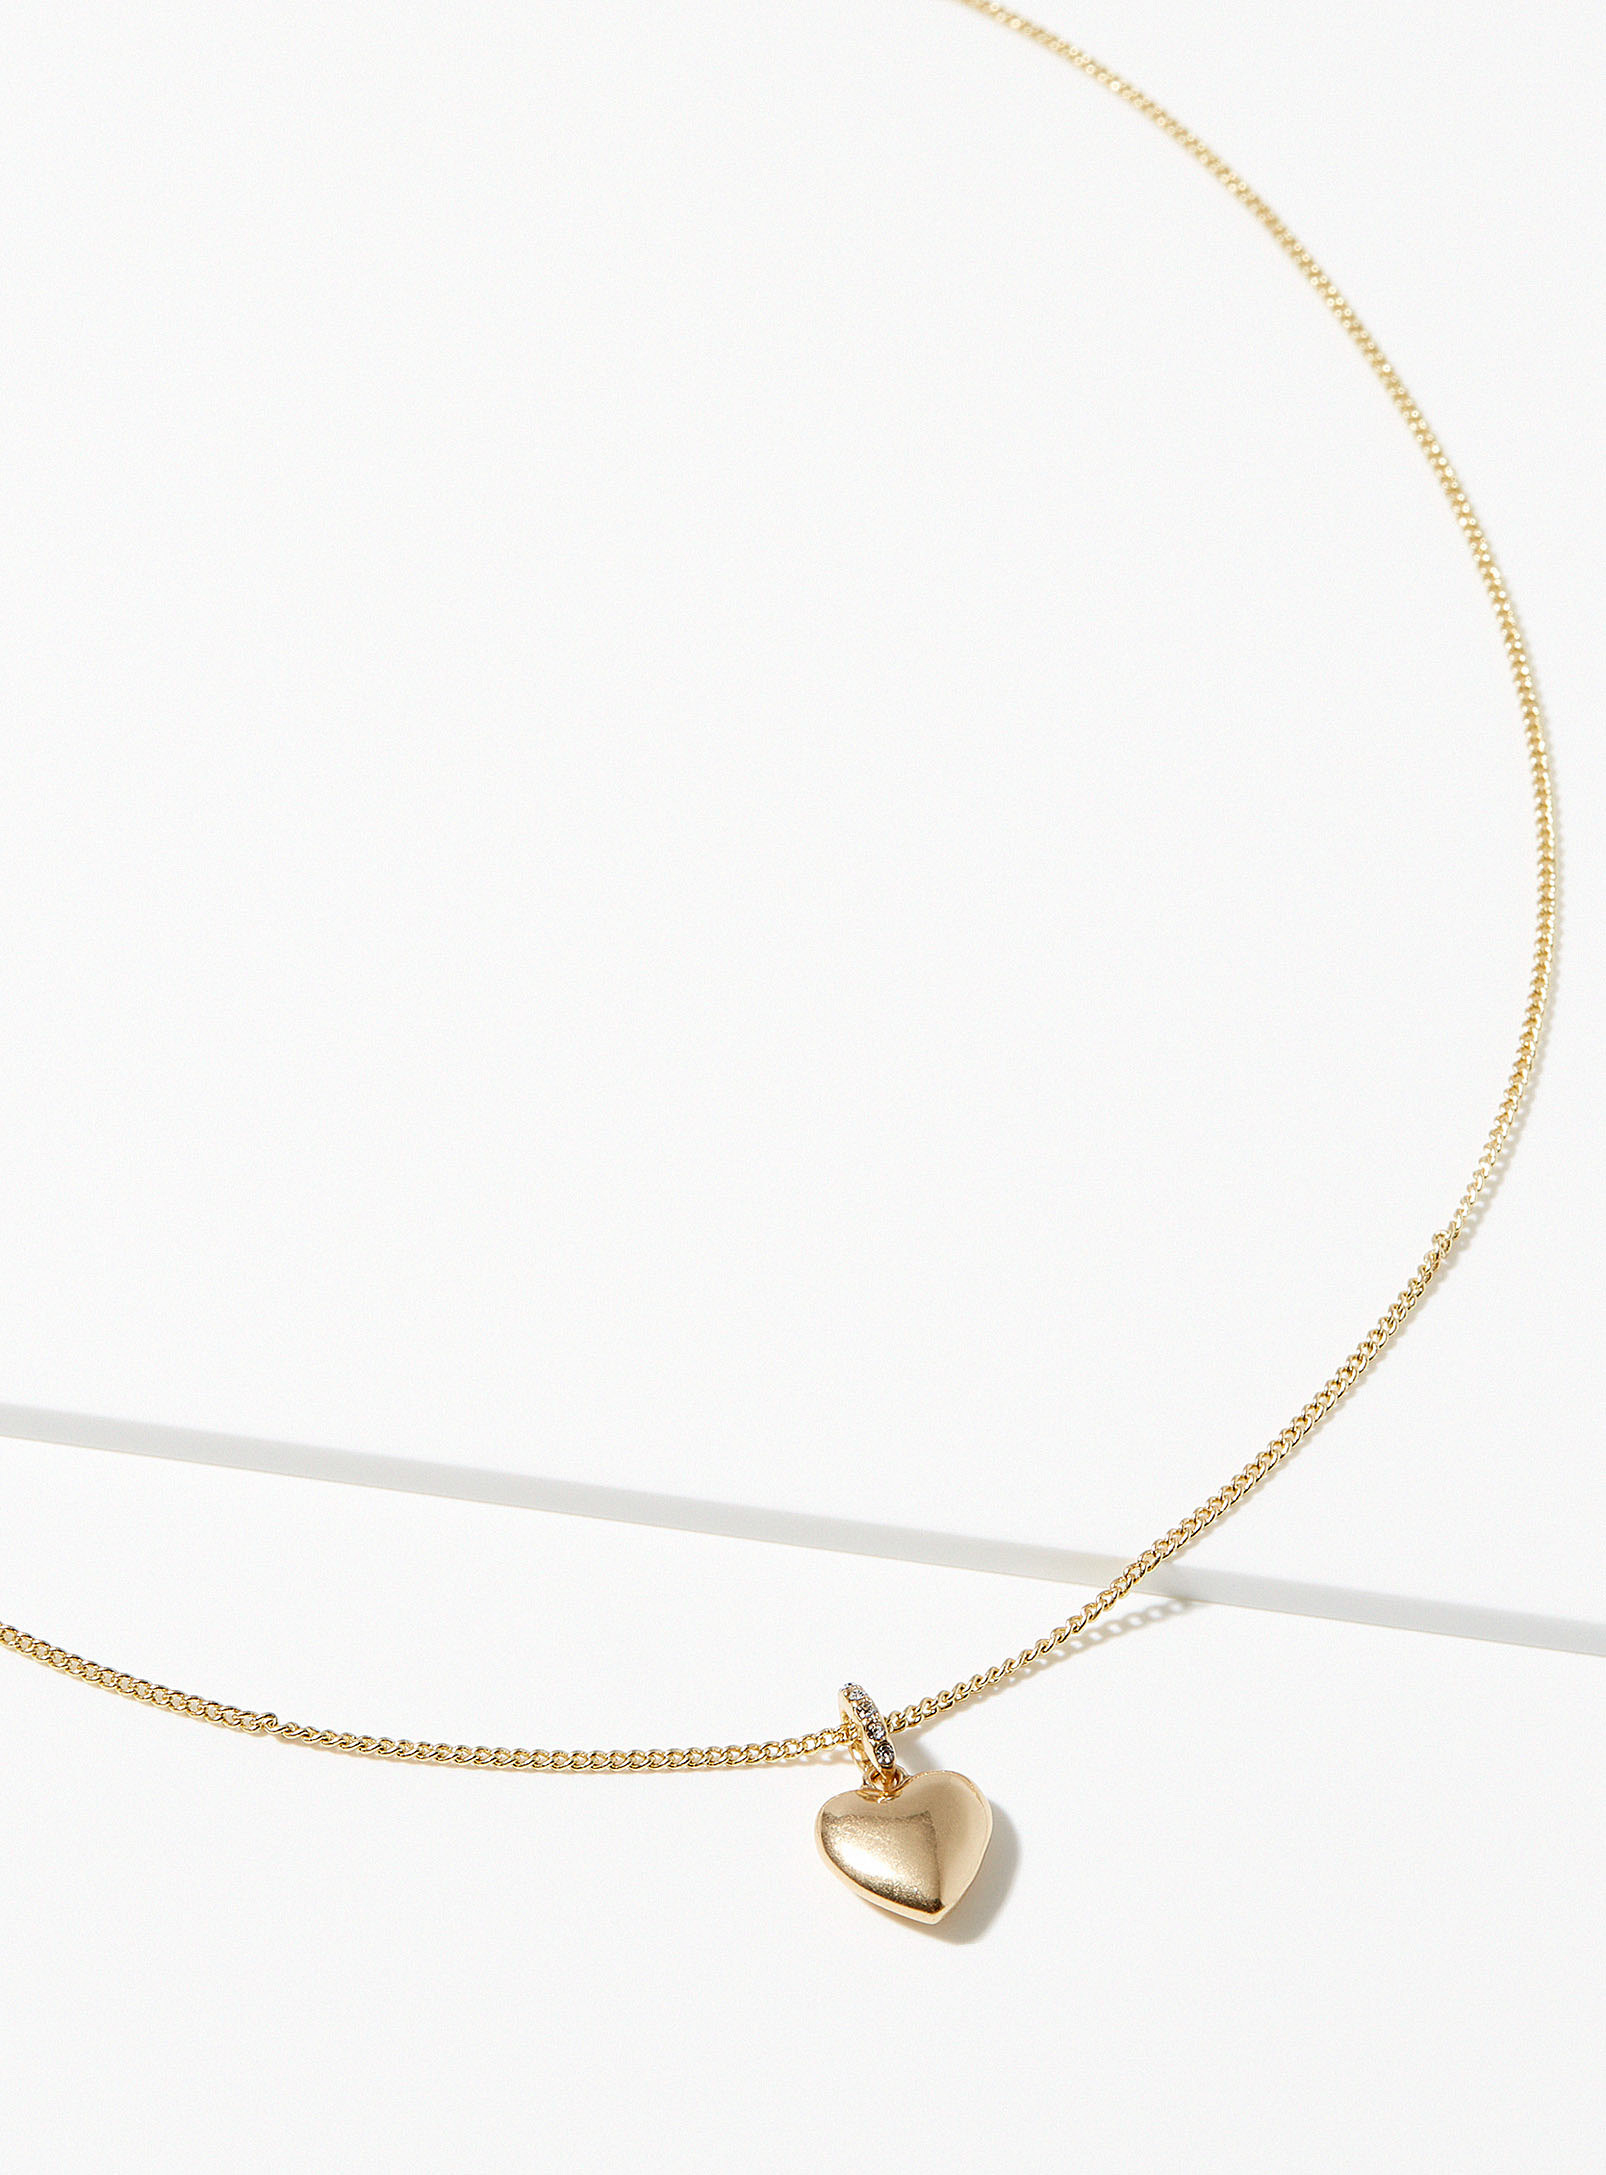 A gold necklace with a heart pendant